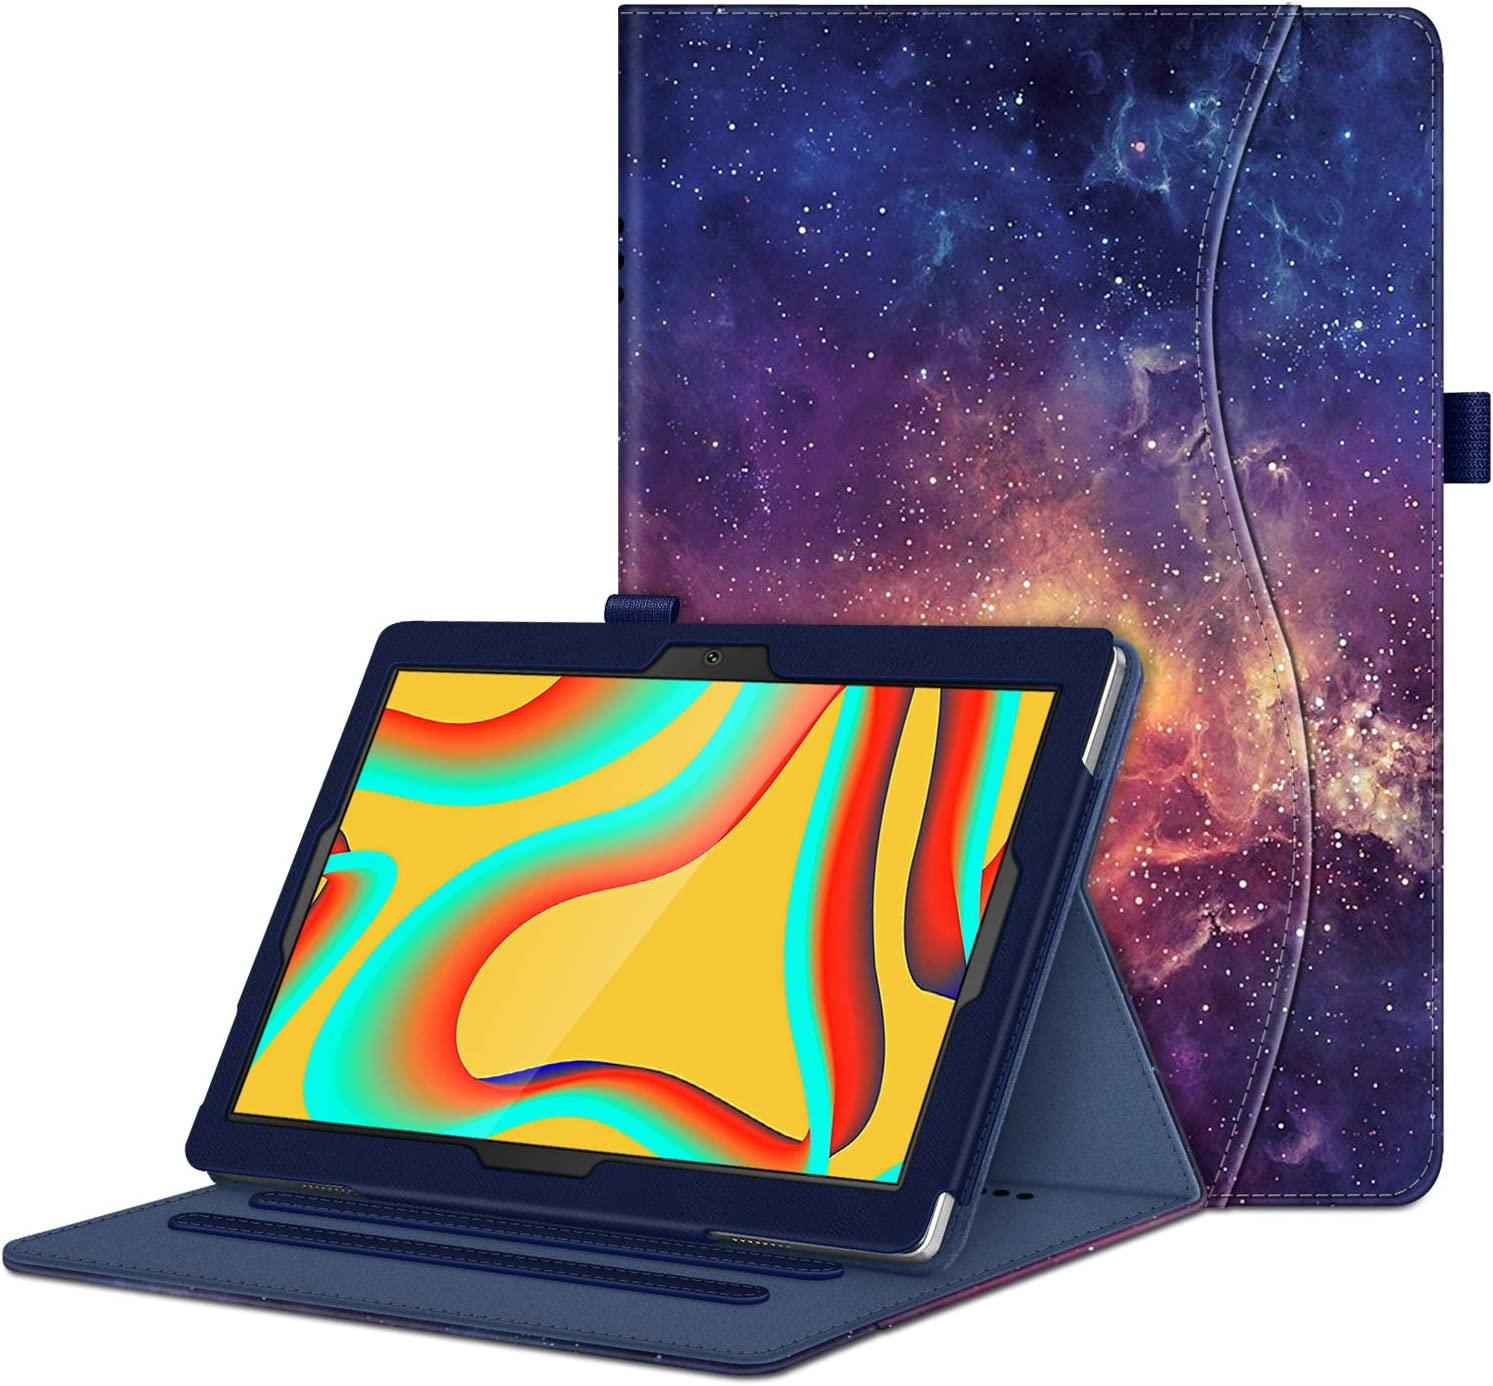 """Fintie Case for VANKYO MatrixPad S30 10 inch Tablet - [Hands Free] Multiple Angle Viewing Folio Smart Stand Cover with Pocket, Pencil Holder for MatrixPad S30 10.1"""" Android Tablet (Galaxy)"""